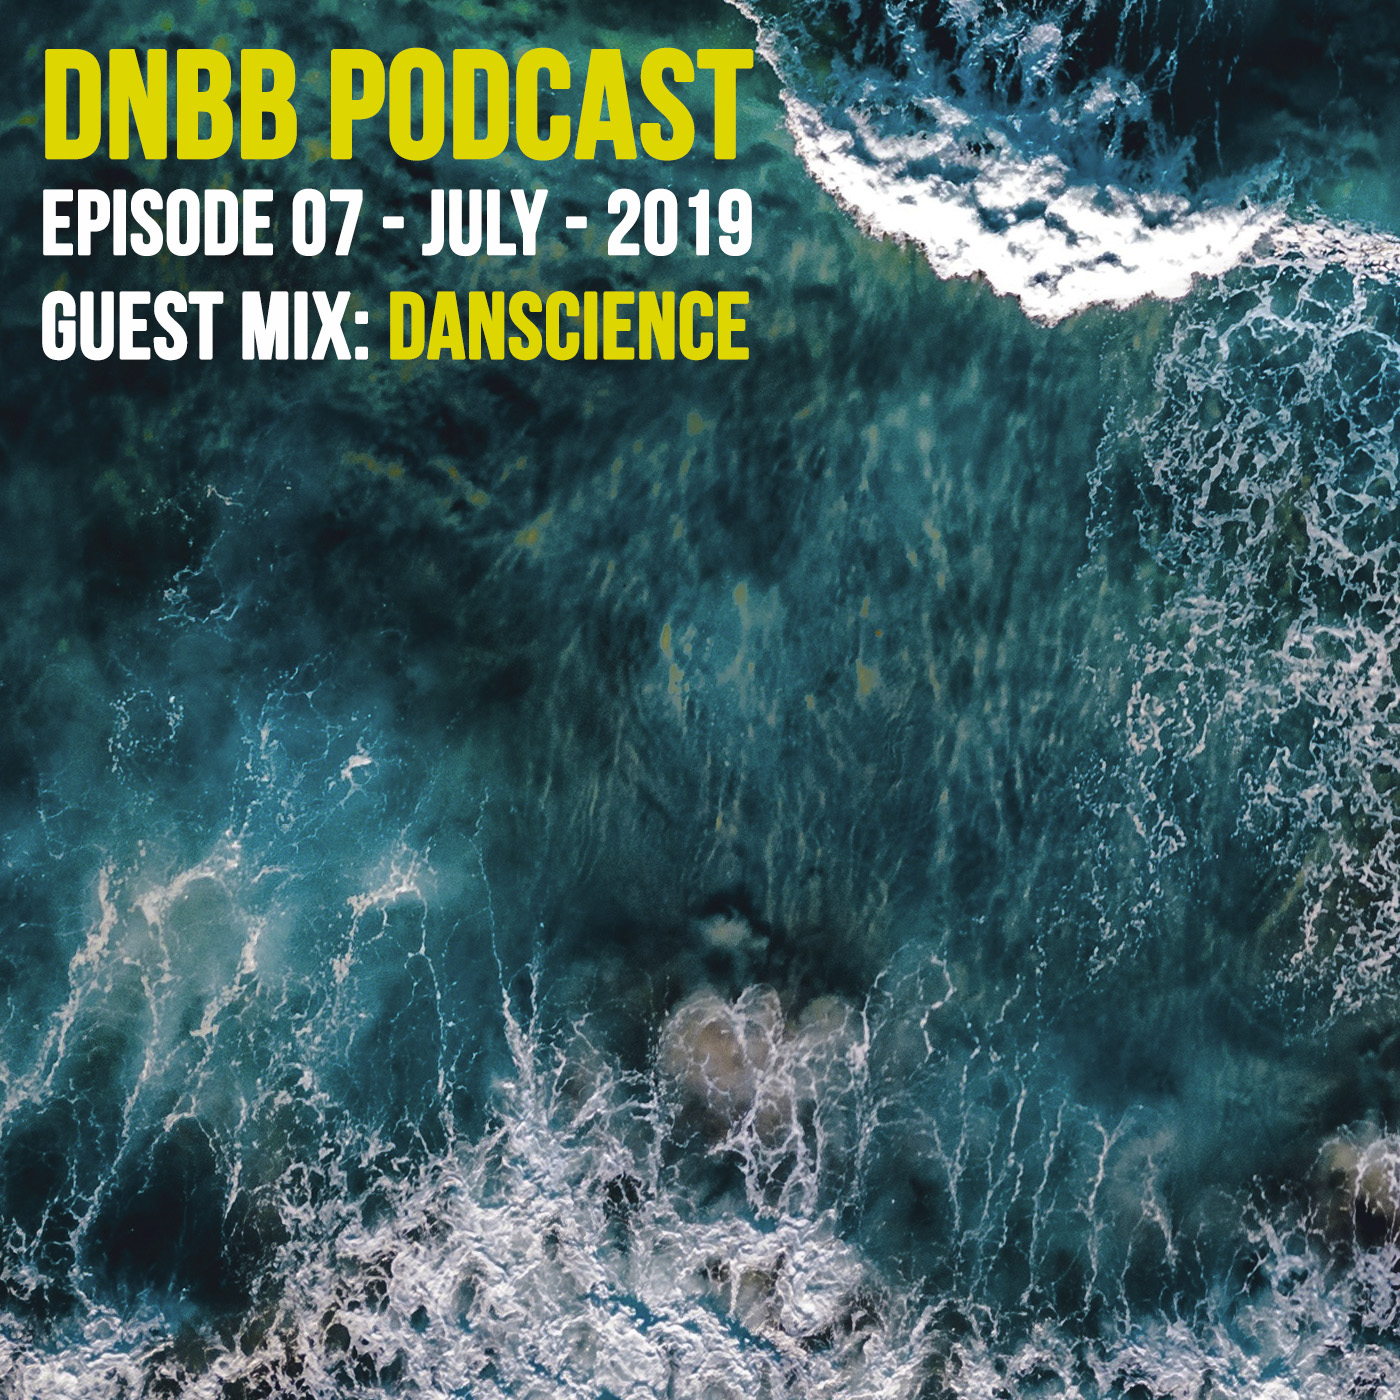 DNBBCast006 by Danscience